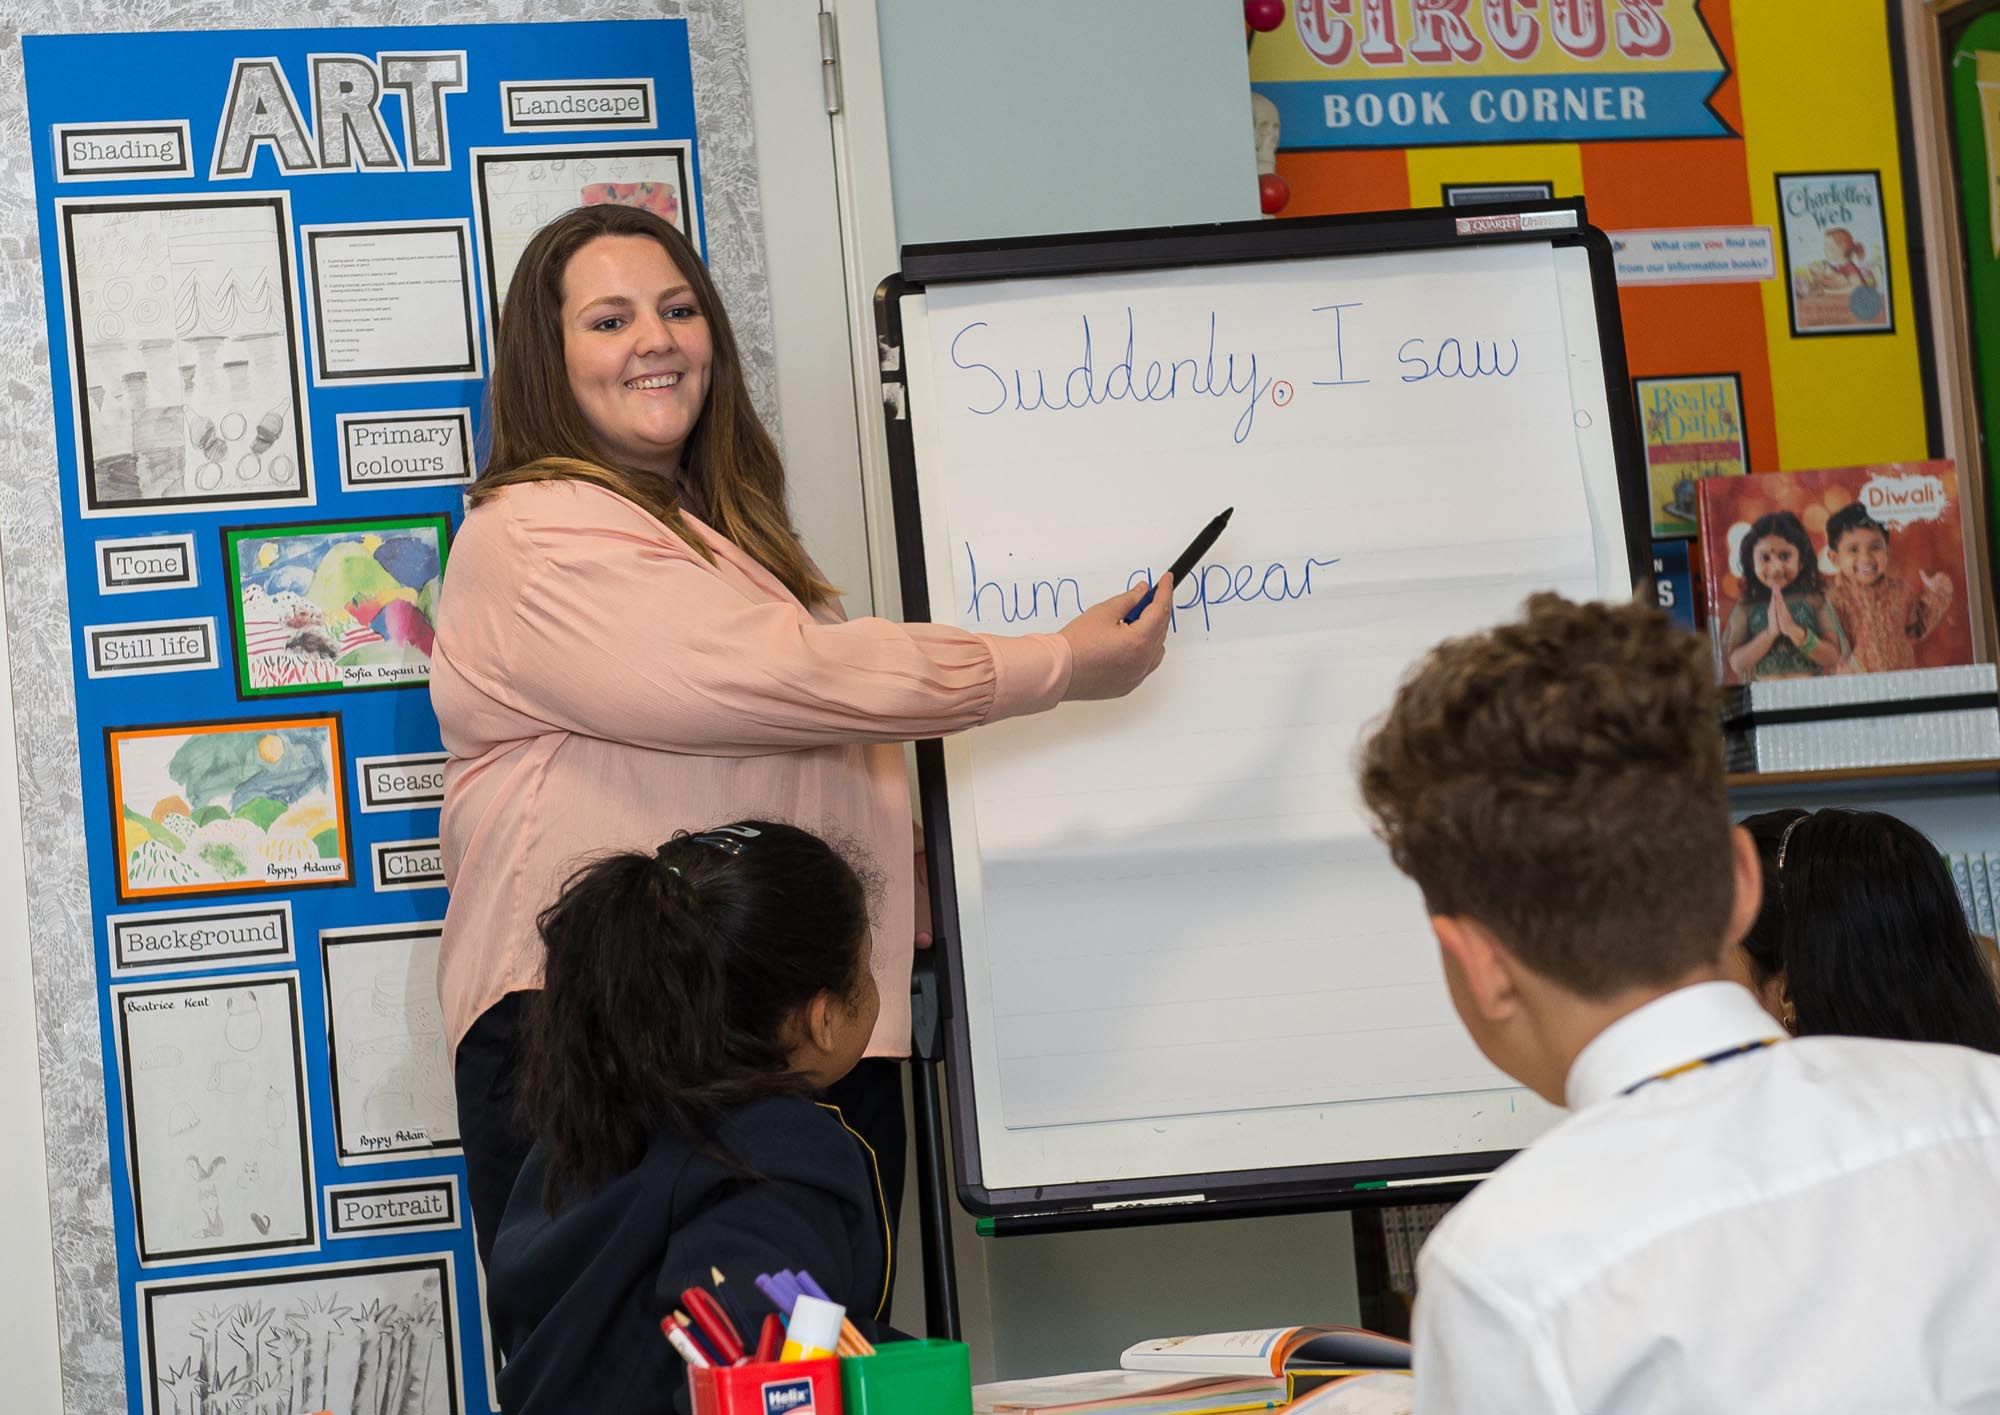 Teacher pointing at words on flipchart